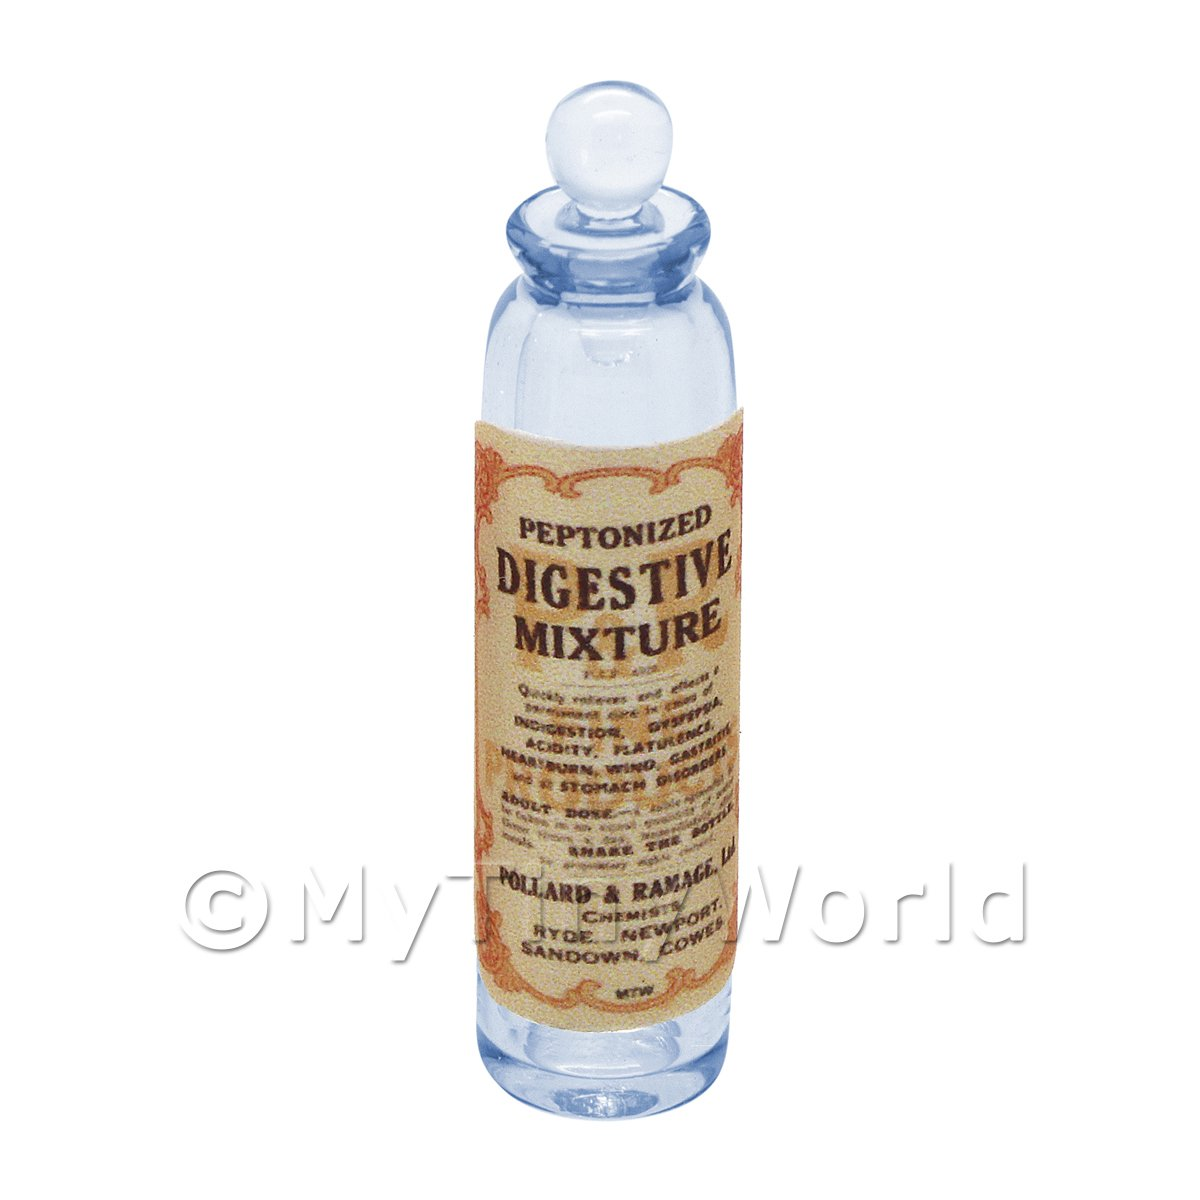 Miniature Digestive Mixture Blue Glass Apothecary Bottle